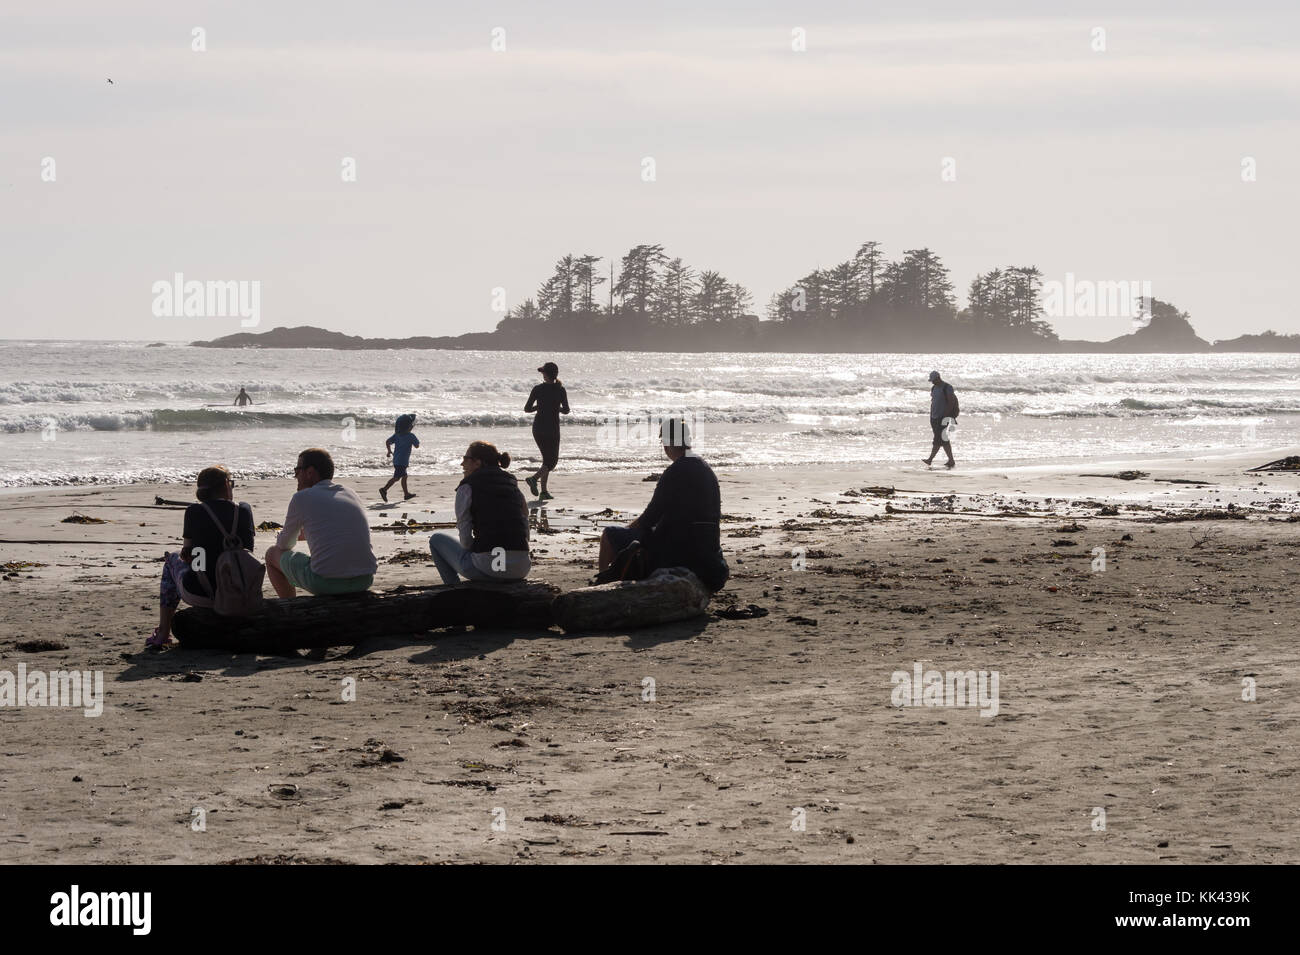 Chesterman beach près de Tofino, Colombie-Britannique, Canada (septembre 2017) - family sitting on wooden log. Photo Stock